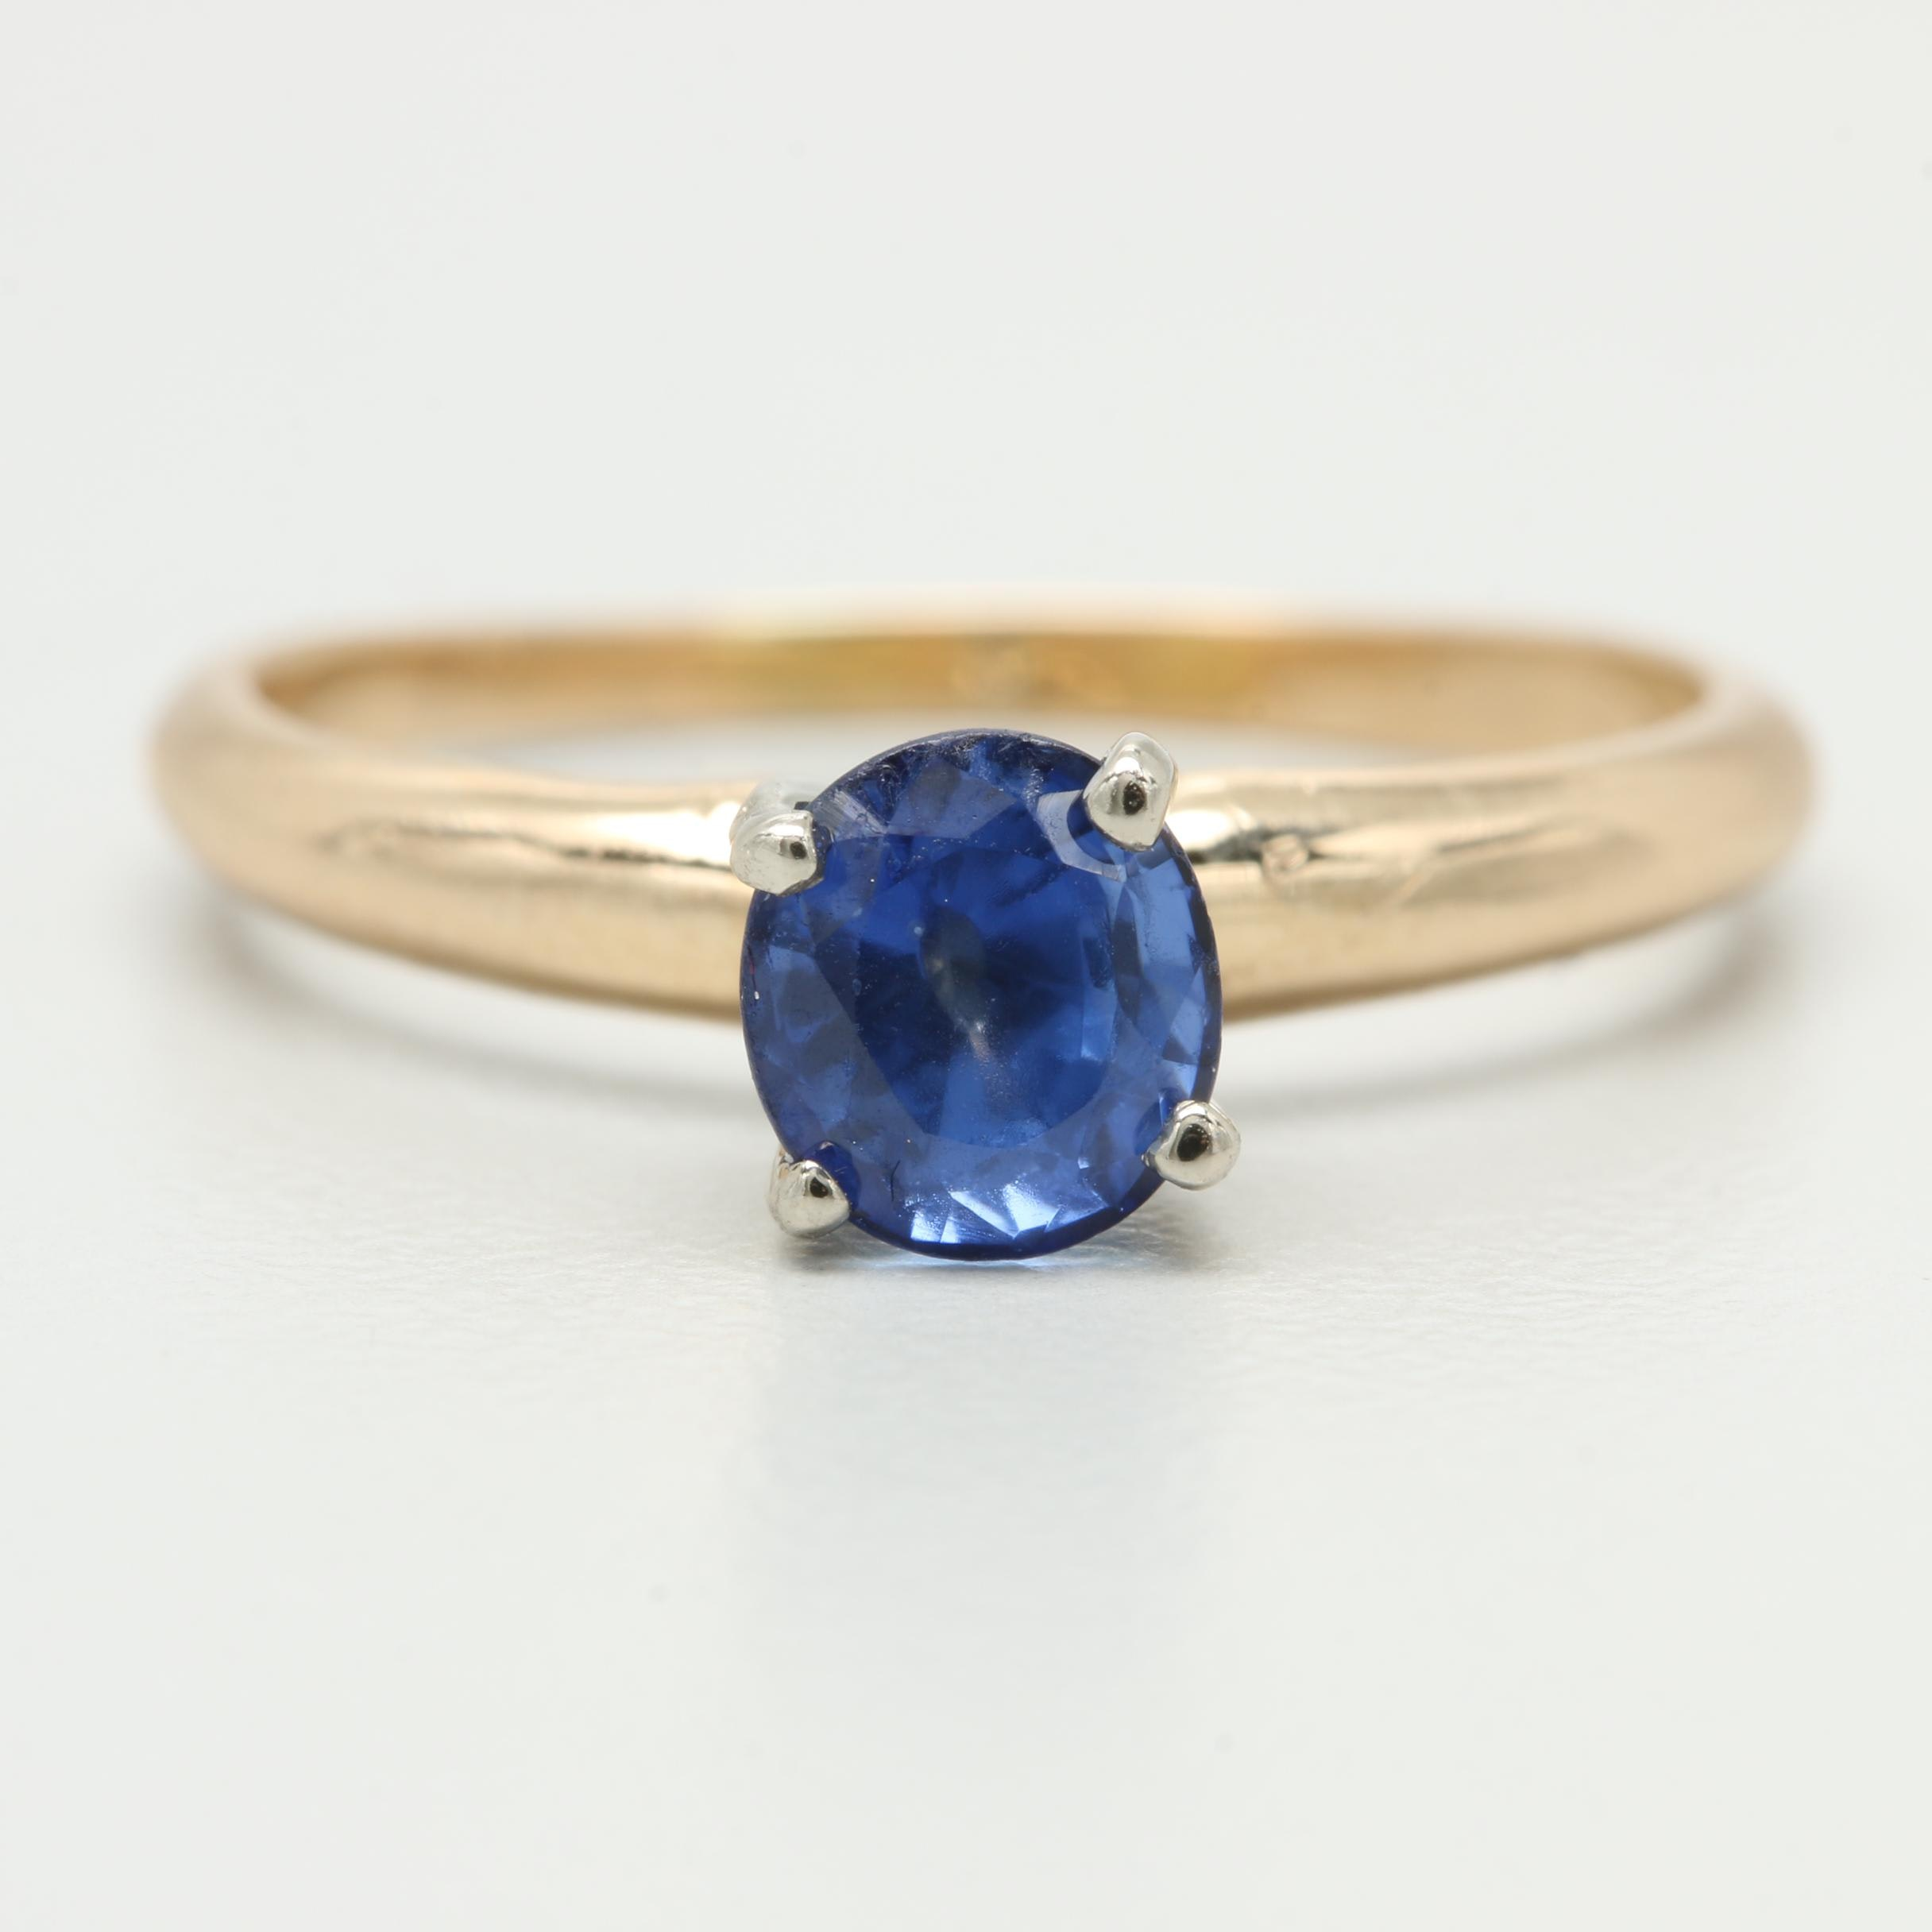 14K Yellow Gold Blue Sapphire Solitaire Ring with White Gold Accents